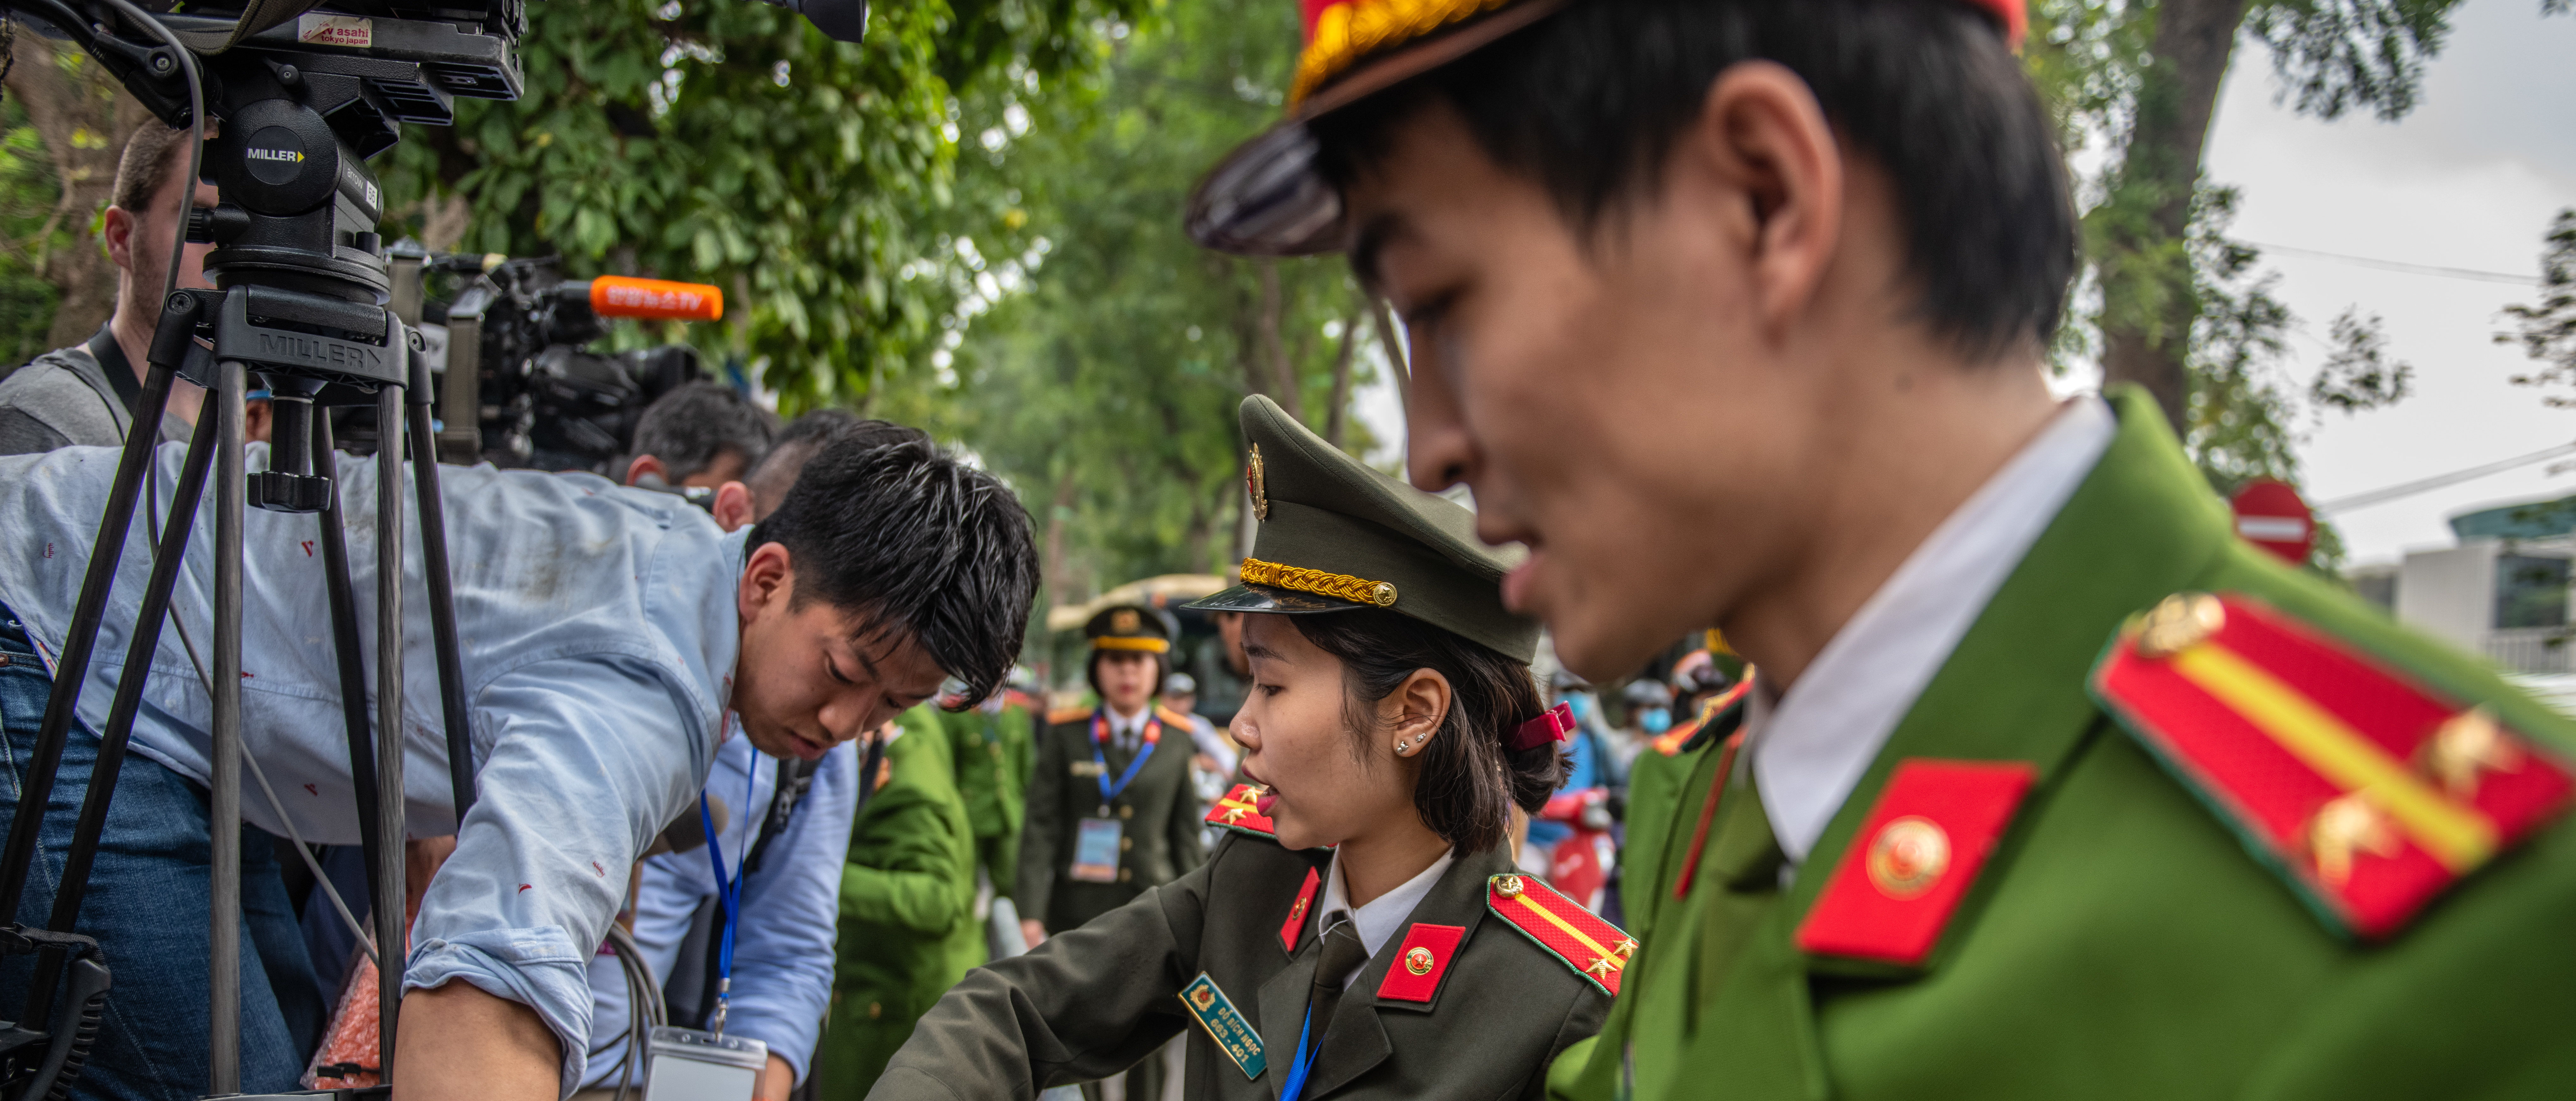 HANOI, VIETNAM - MARCH 01: Police officers move members of the media ahead of the arrival of North Korean leader Kim Jong-un at the Presidential Palace on March 1, 2019 in Hanoi, Vietnam. North Korean leader Kim Jong-un began his two-day official visit to Vietnam on Friday after his second summit with U.S. President Donald Trump in Hanoi which ended without an agreement made. (Photo by Carl Court/Getty Images)